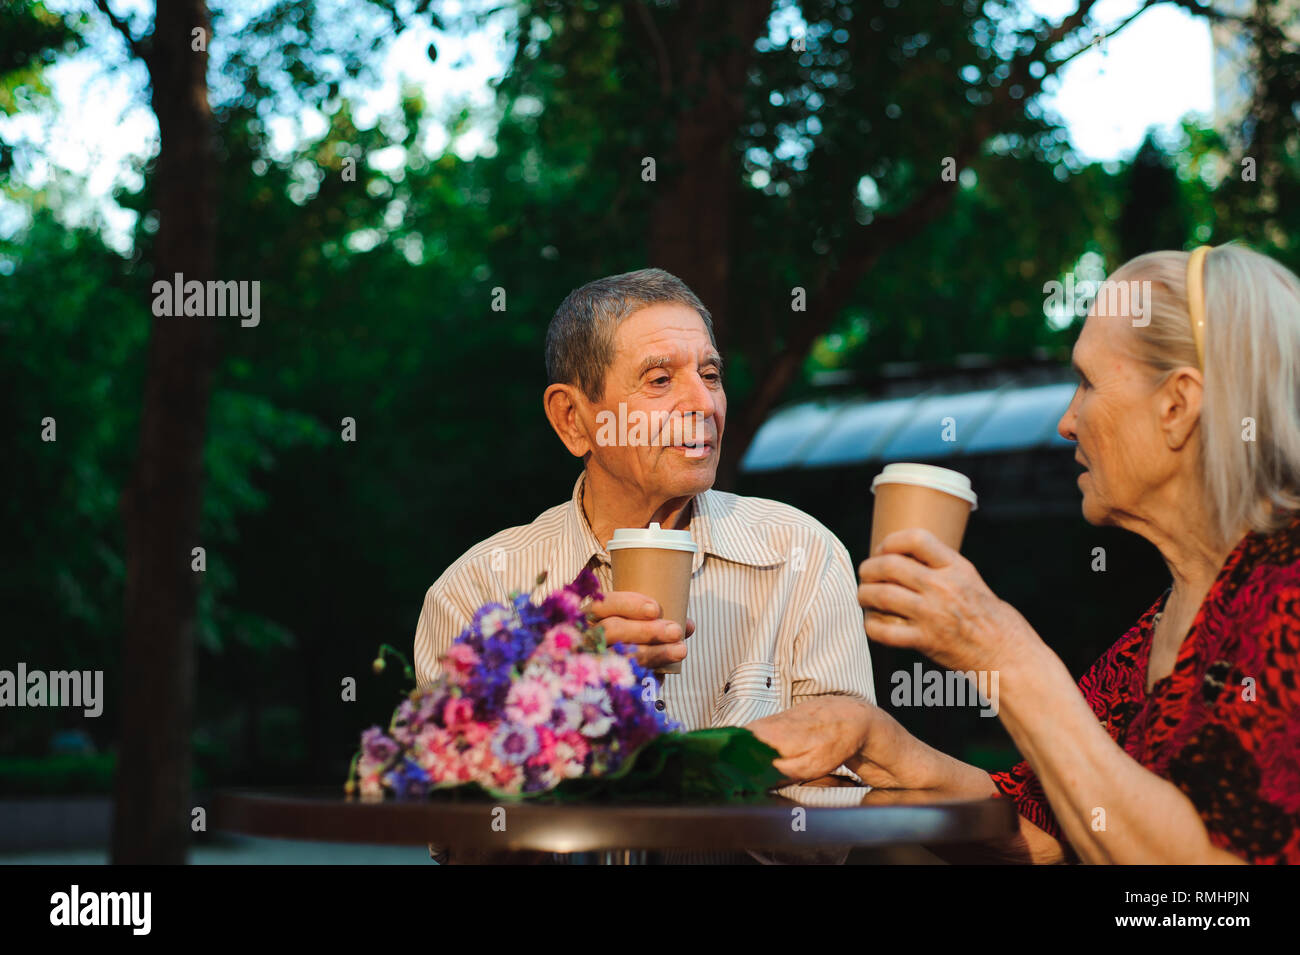 Most Reliable Senior Dating Online Sites In Fl